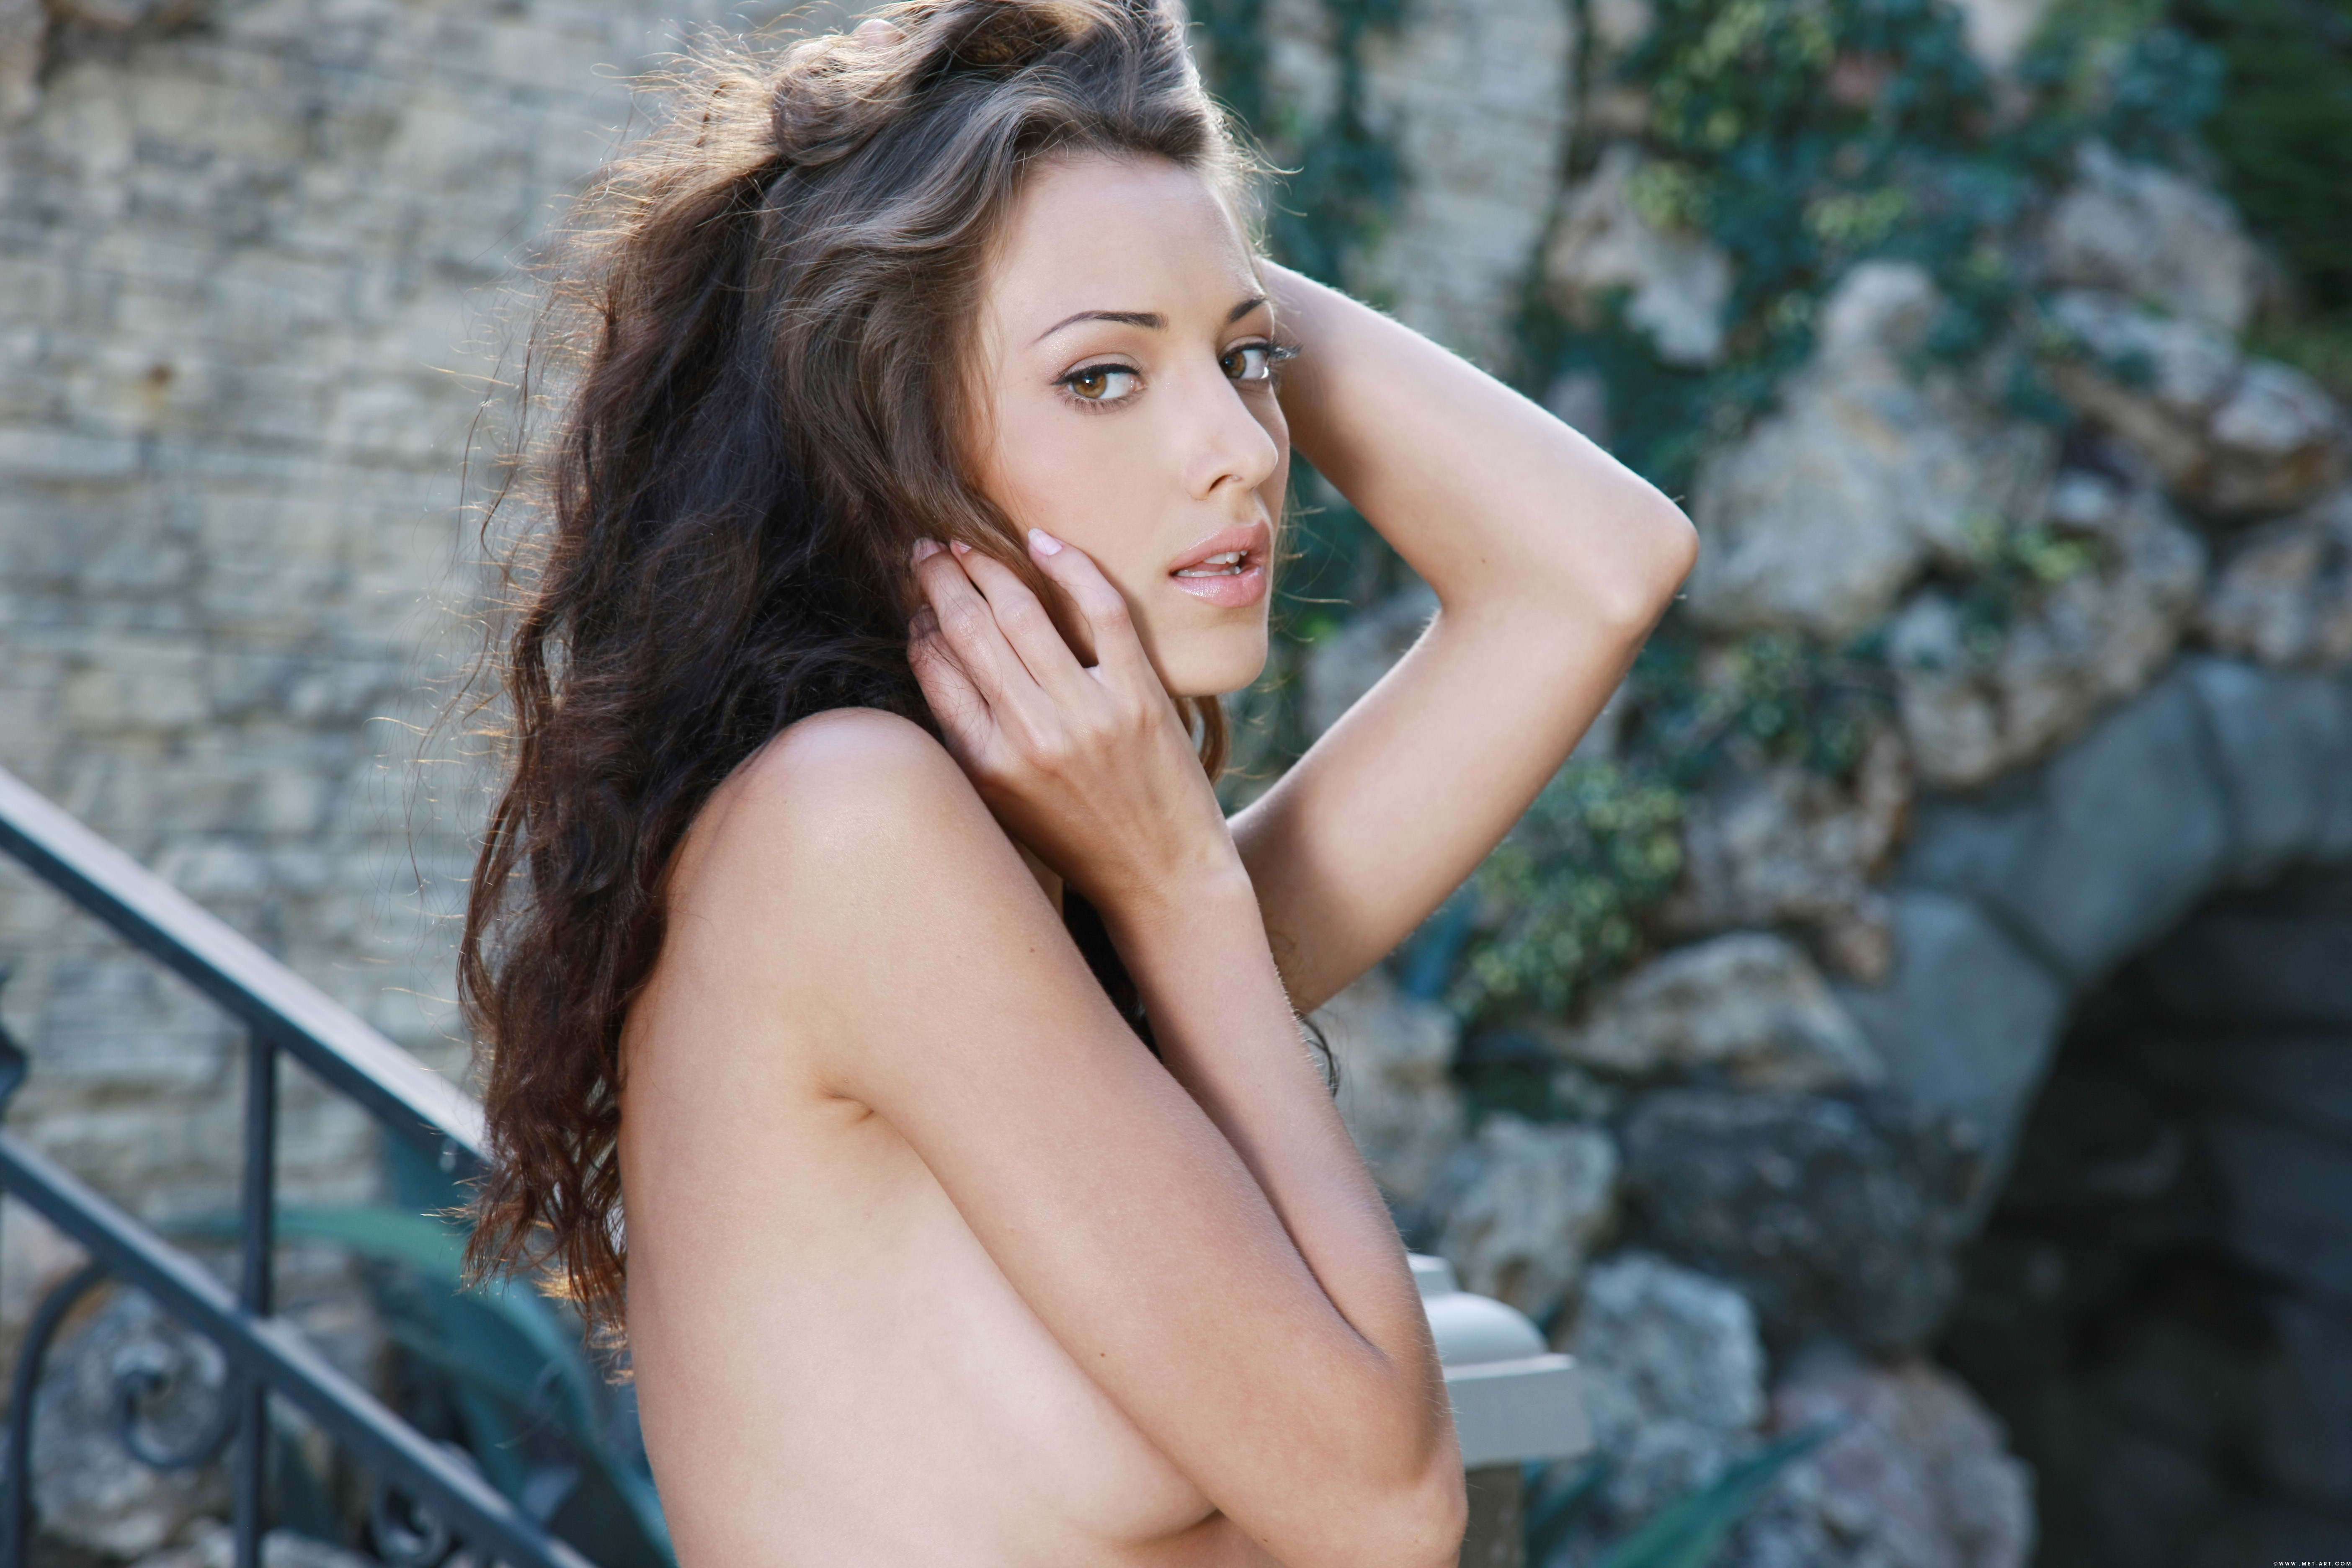 brunettes nipples Women Anna HD Wallpaper